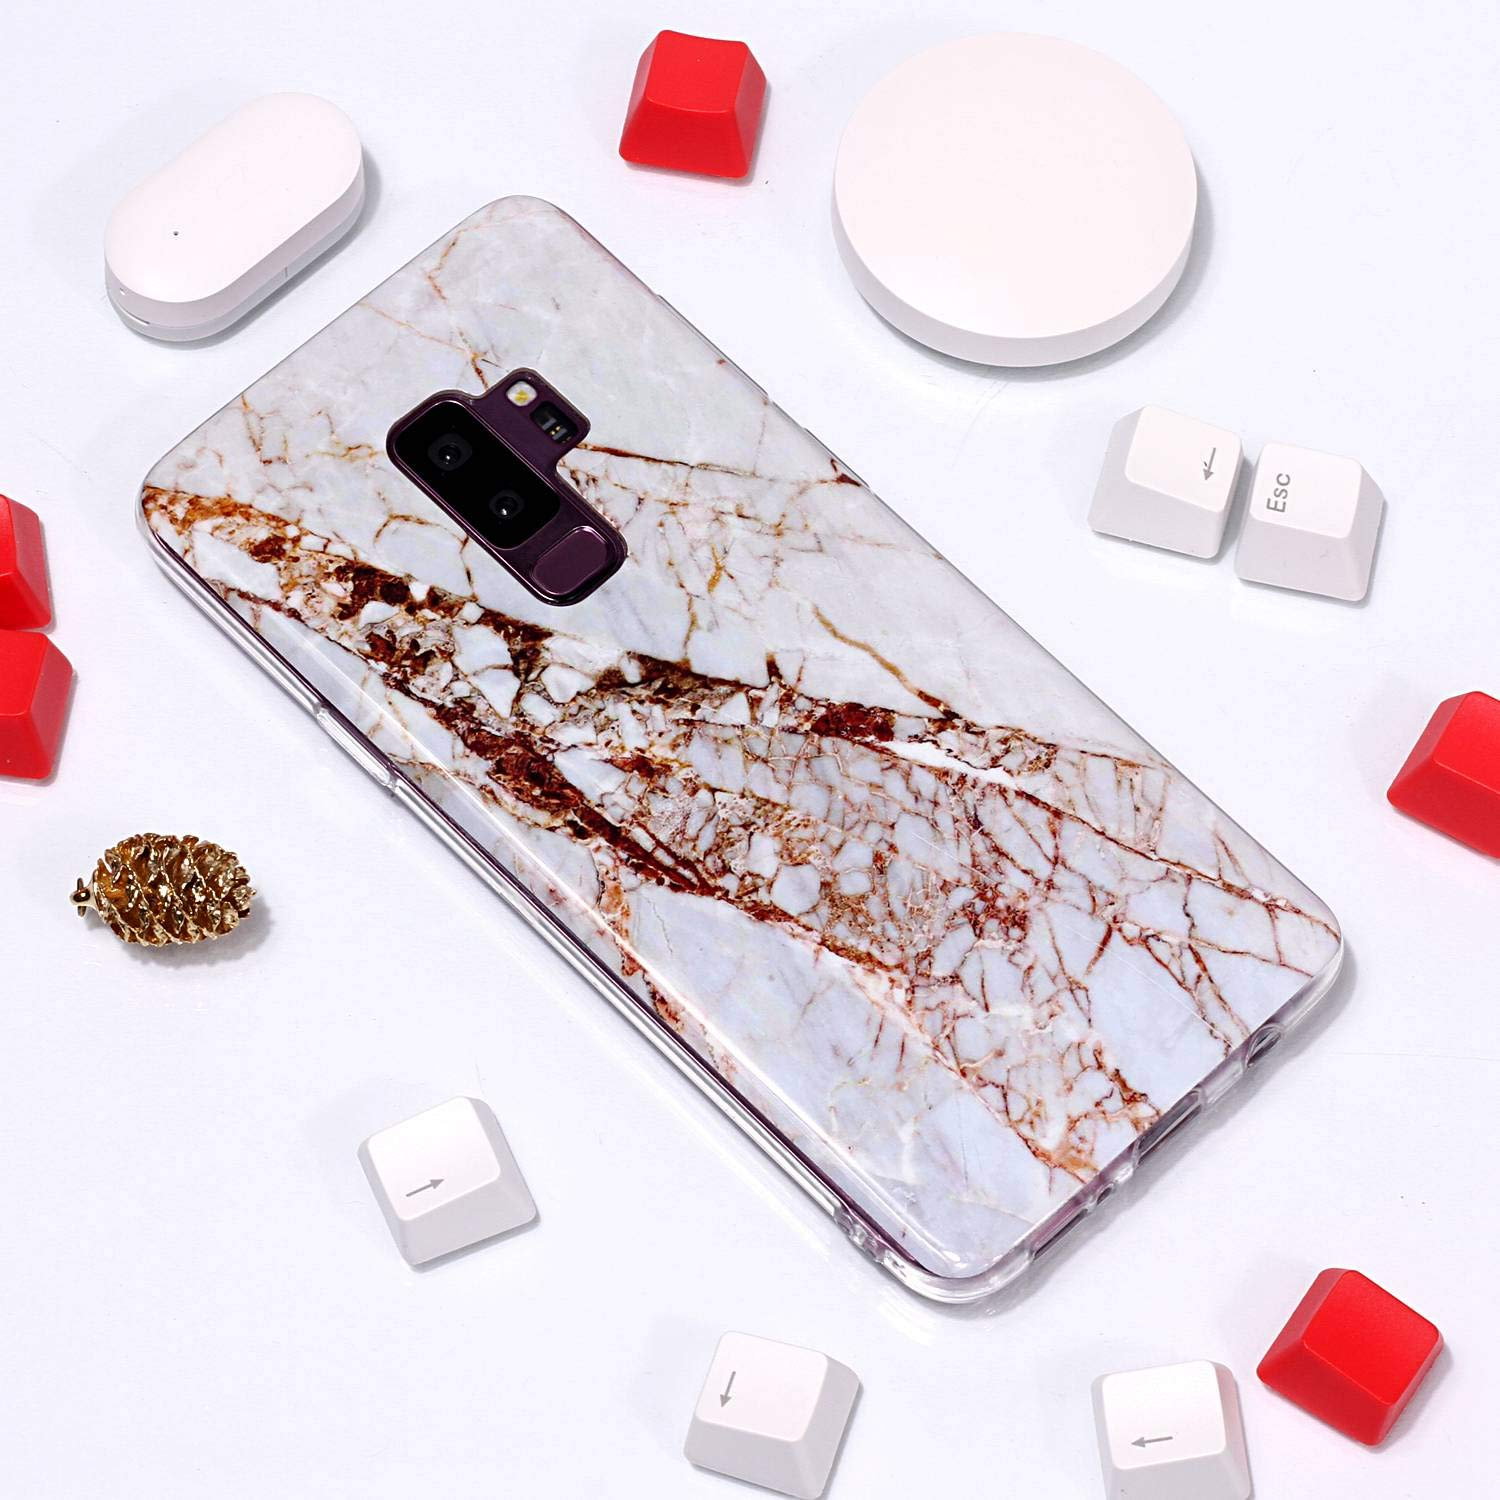 for Samsung Galaxy S9 Plus Marble Case with Screen Protector,Unique Pattern Design Skin Ultra Thin Slim Fit Soft Gel Silicone Case,QFFUN Shockproof Anti-Scratch Protective Back Cover - White by QFFUN (Image #4)